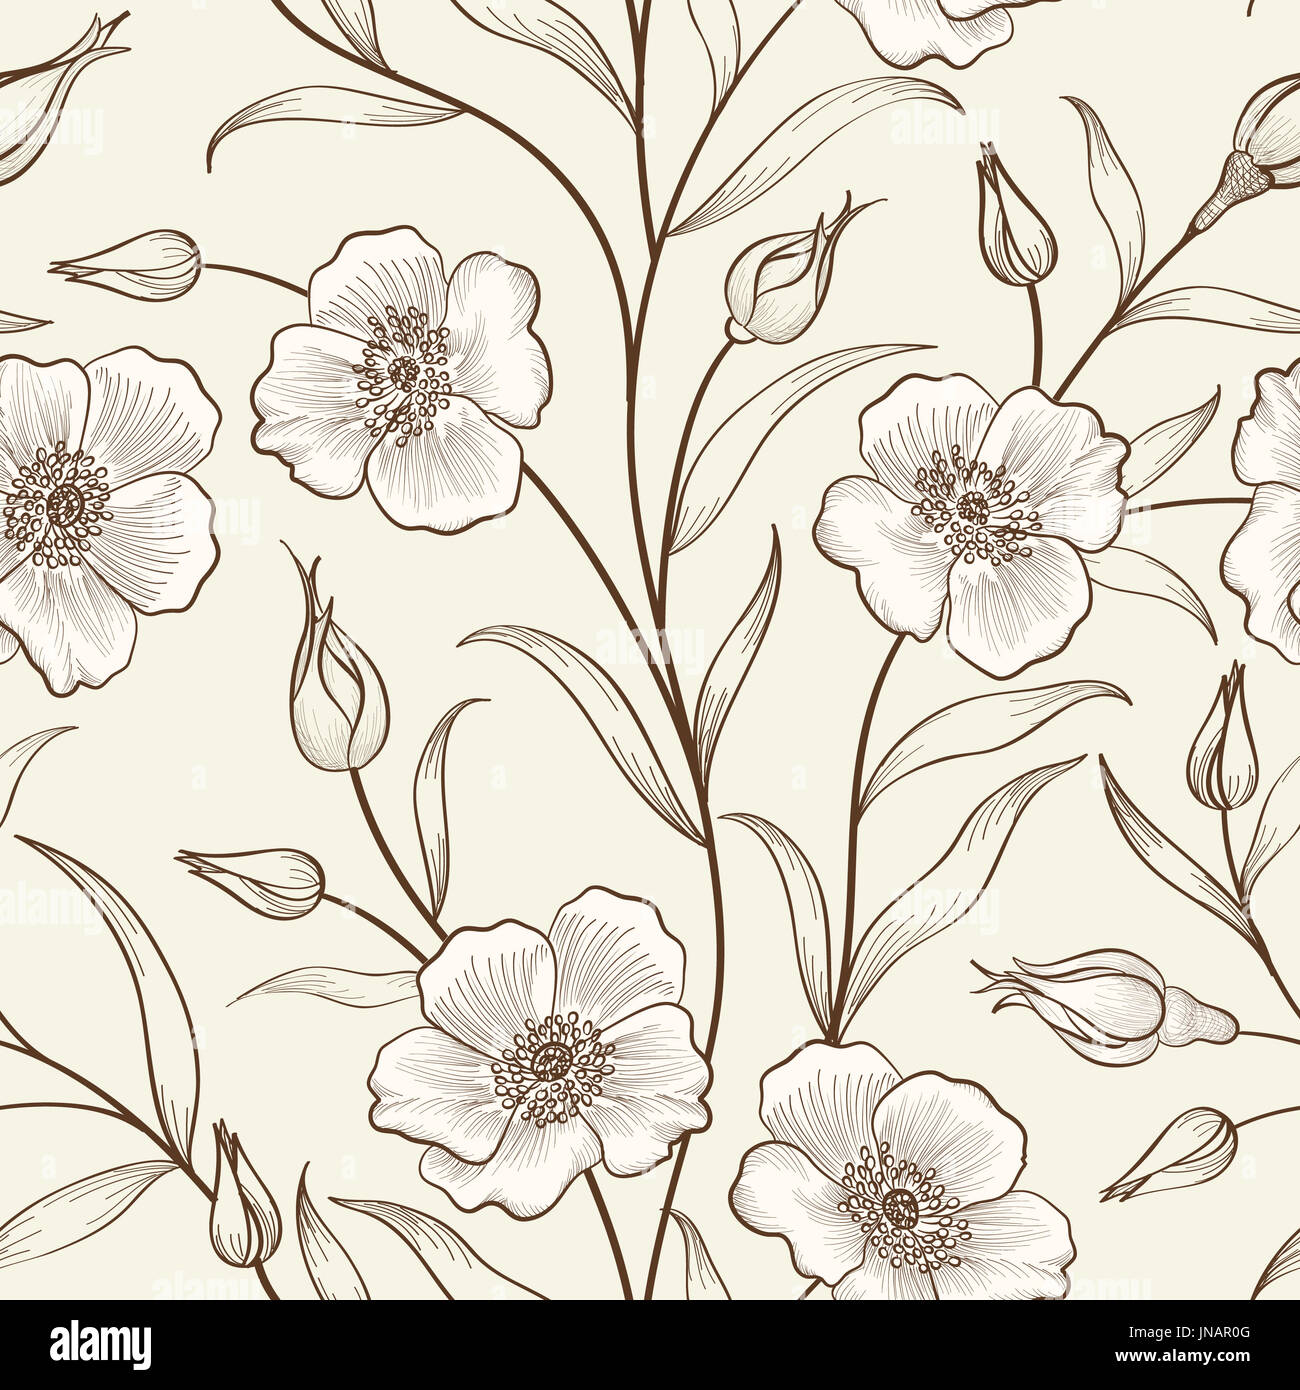 Floral seamless outline sketch pattern. Flower background. Floral tile spring texture with flowers Ornamental flourish garden cover for card design - Stock Image